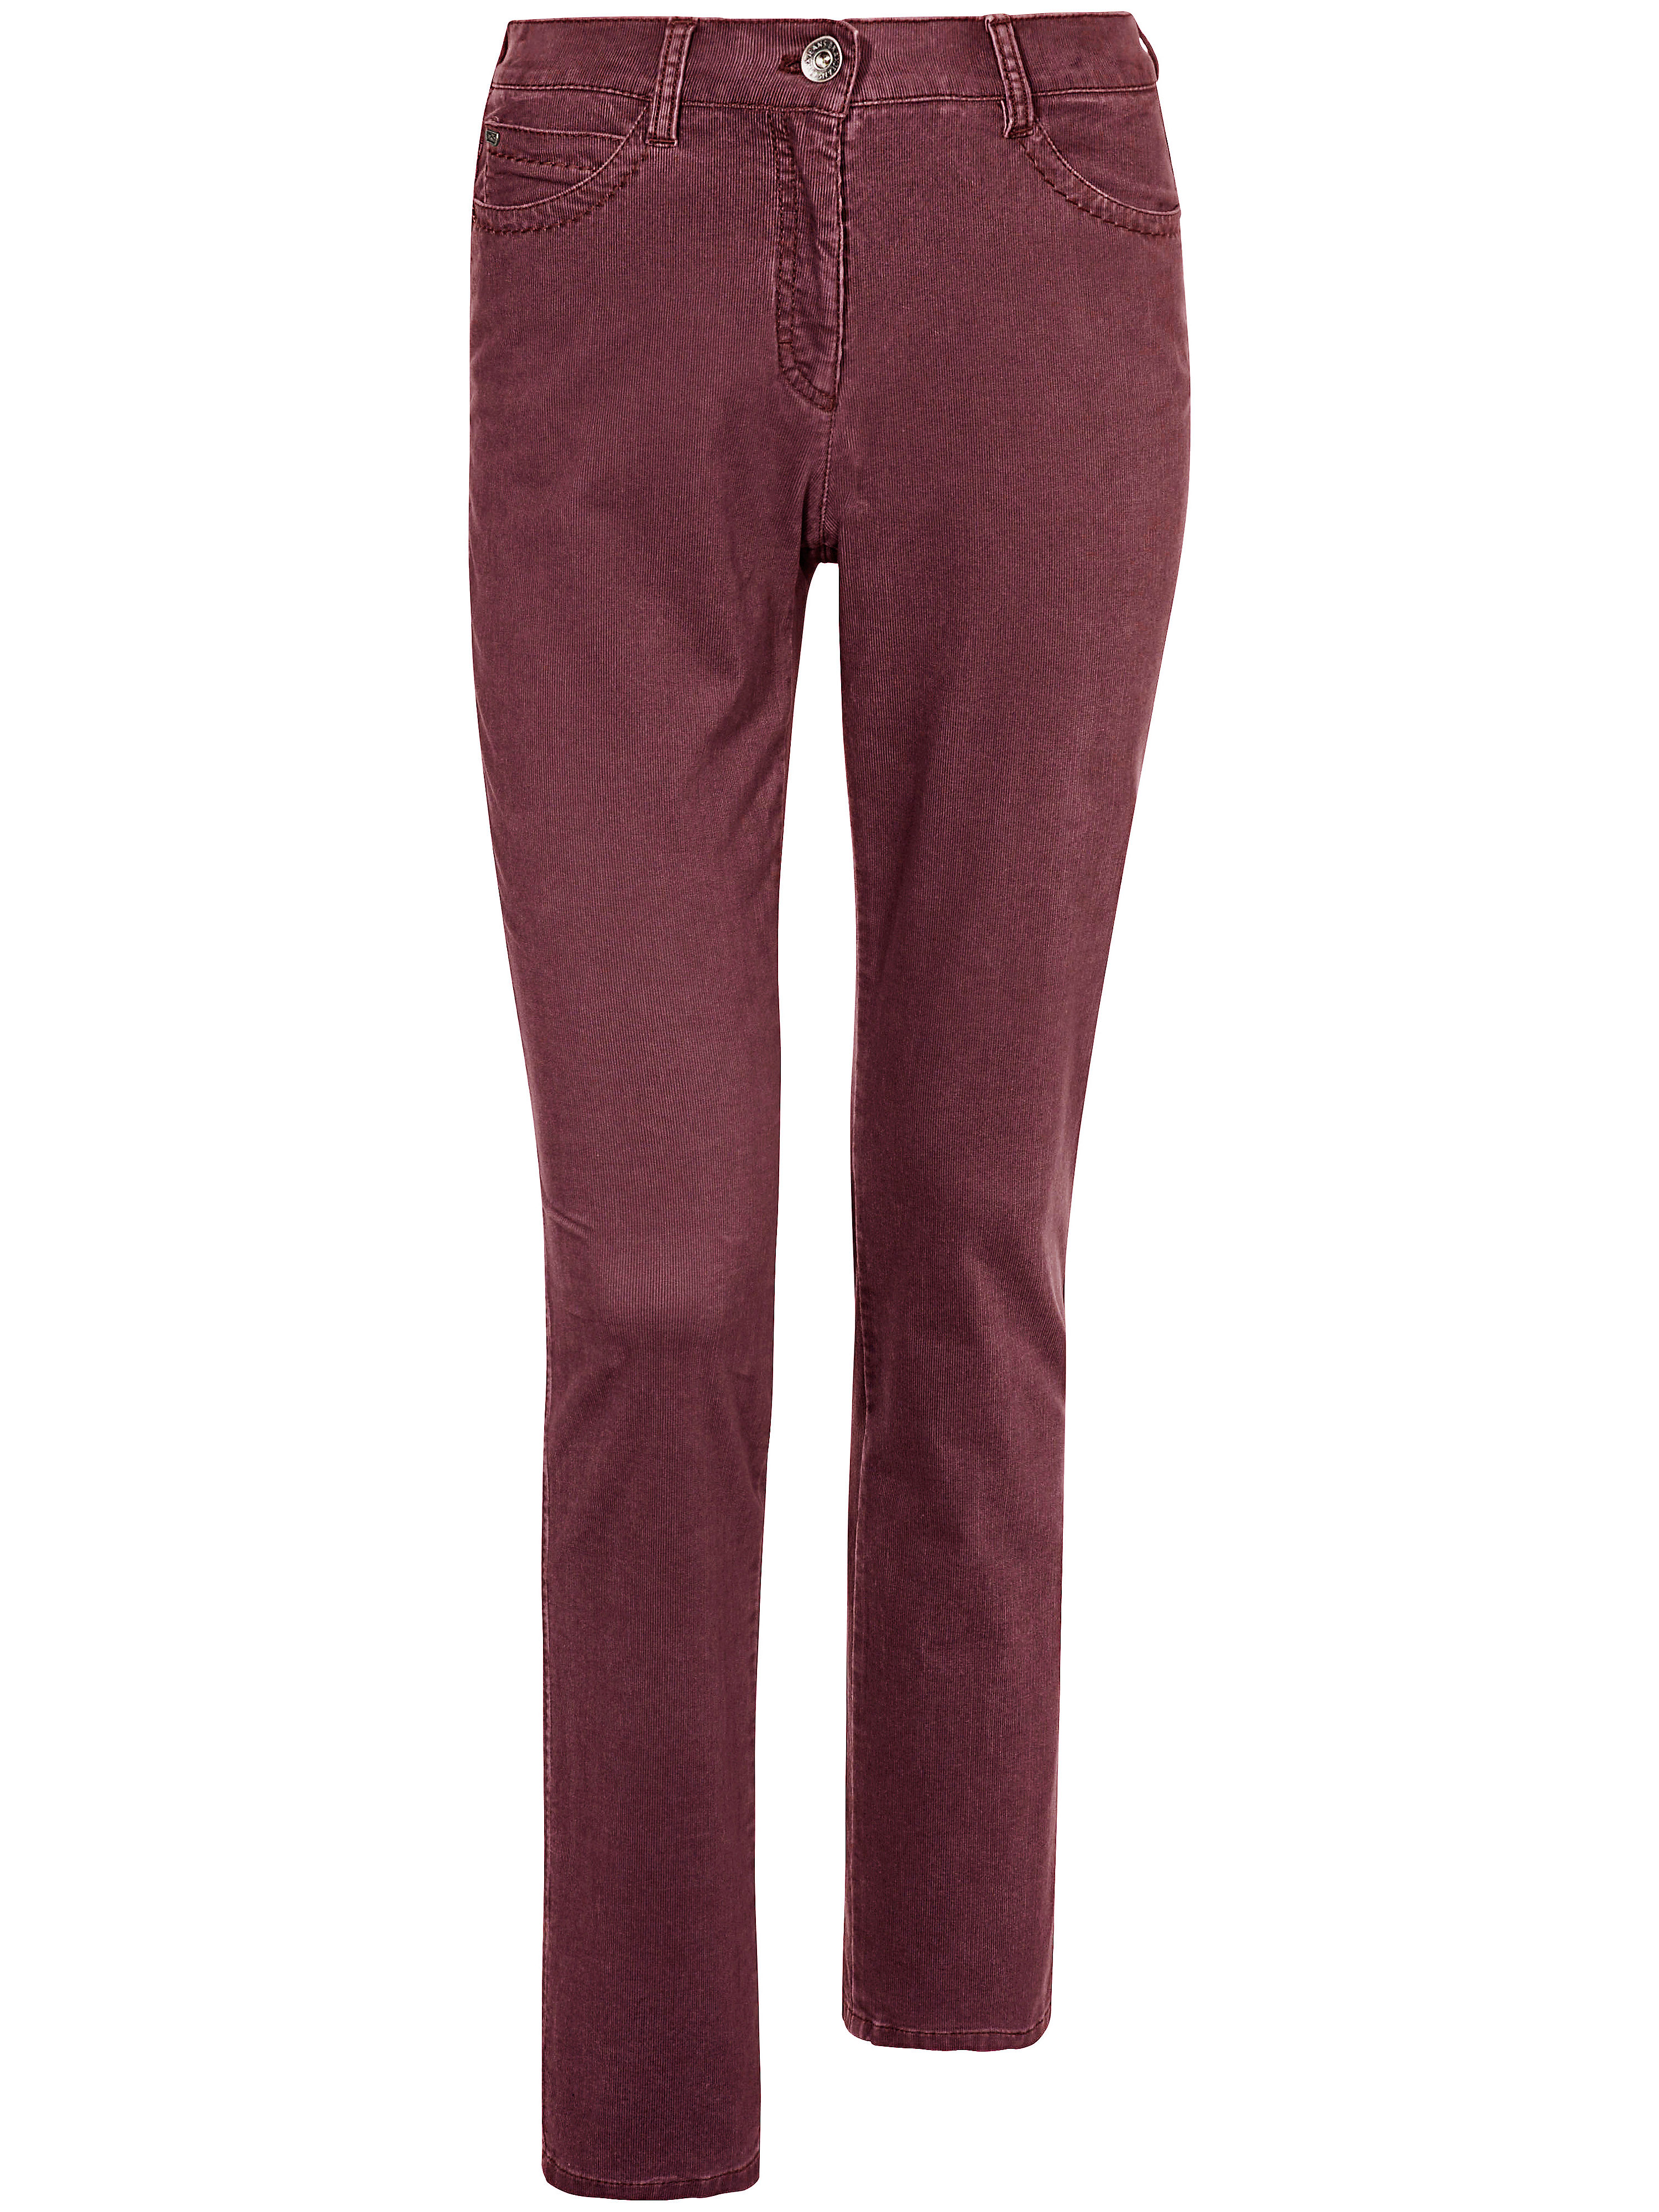 Le pantalon Feminine Fit  Brax Feel Good rouge